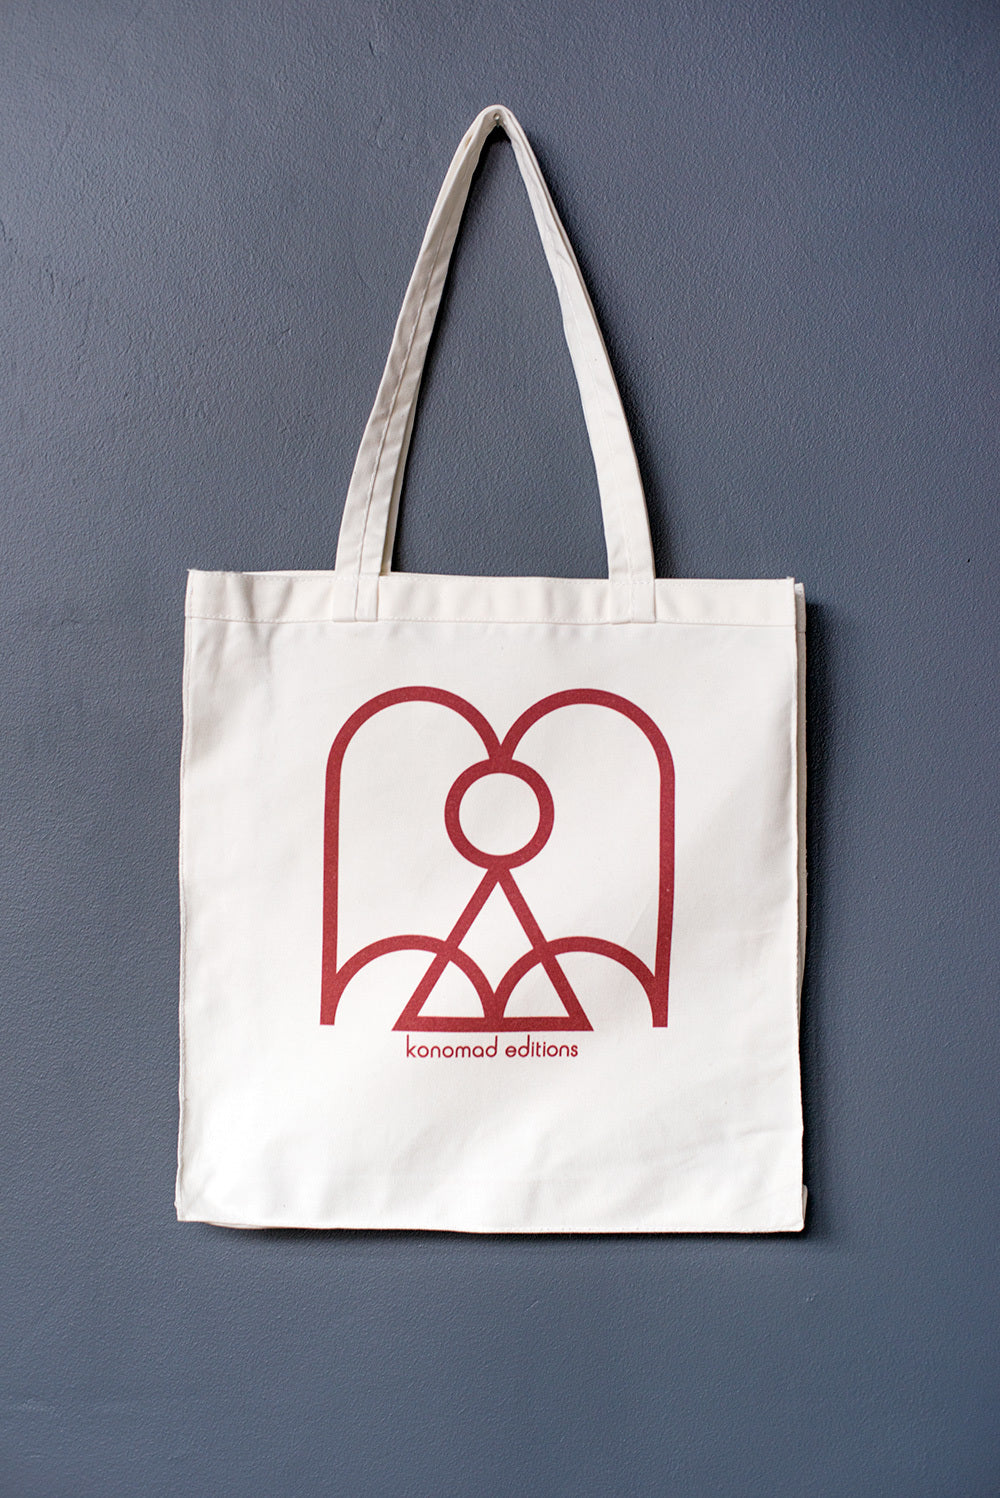 "tote bag ""Konomad editions"""